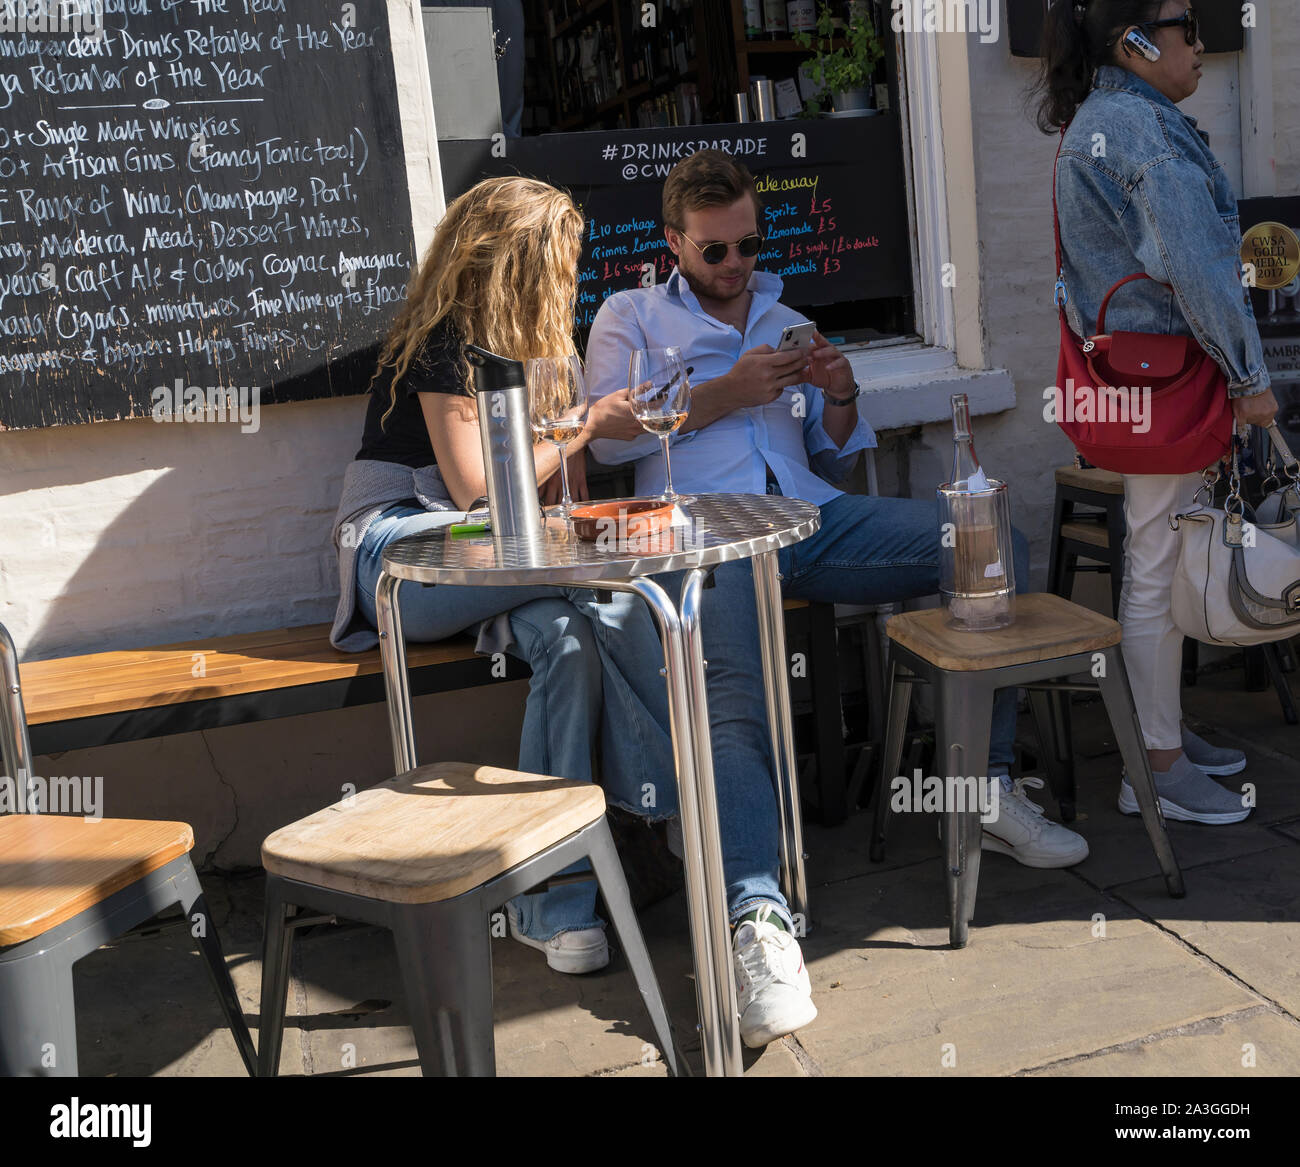 Man and woman sat at table with bottle and glasses having drinks Cambridge City 2019 Stock Photo